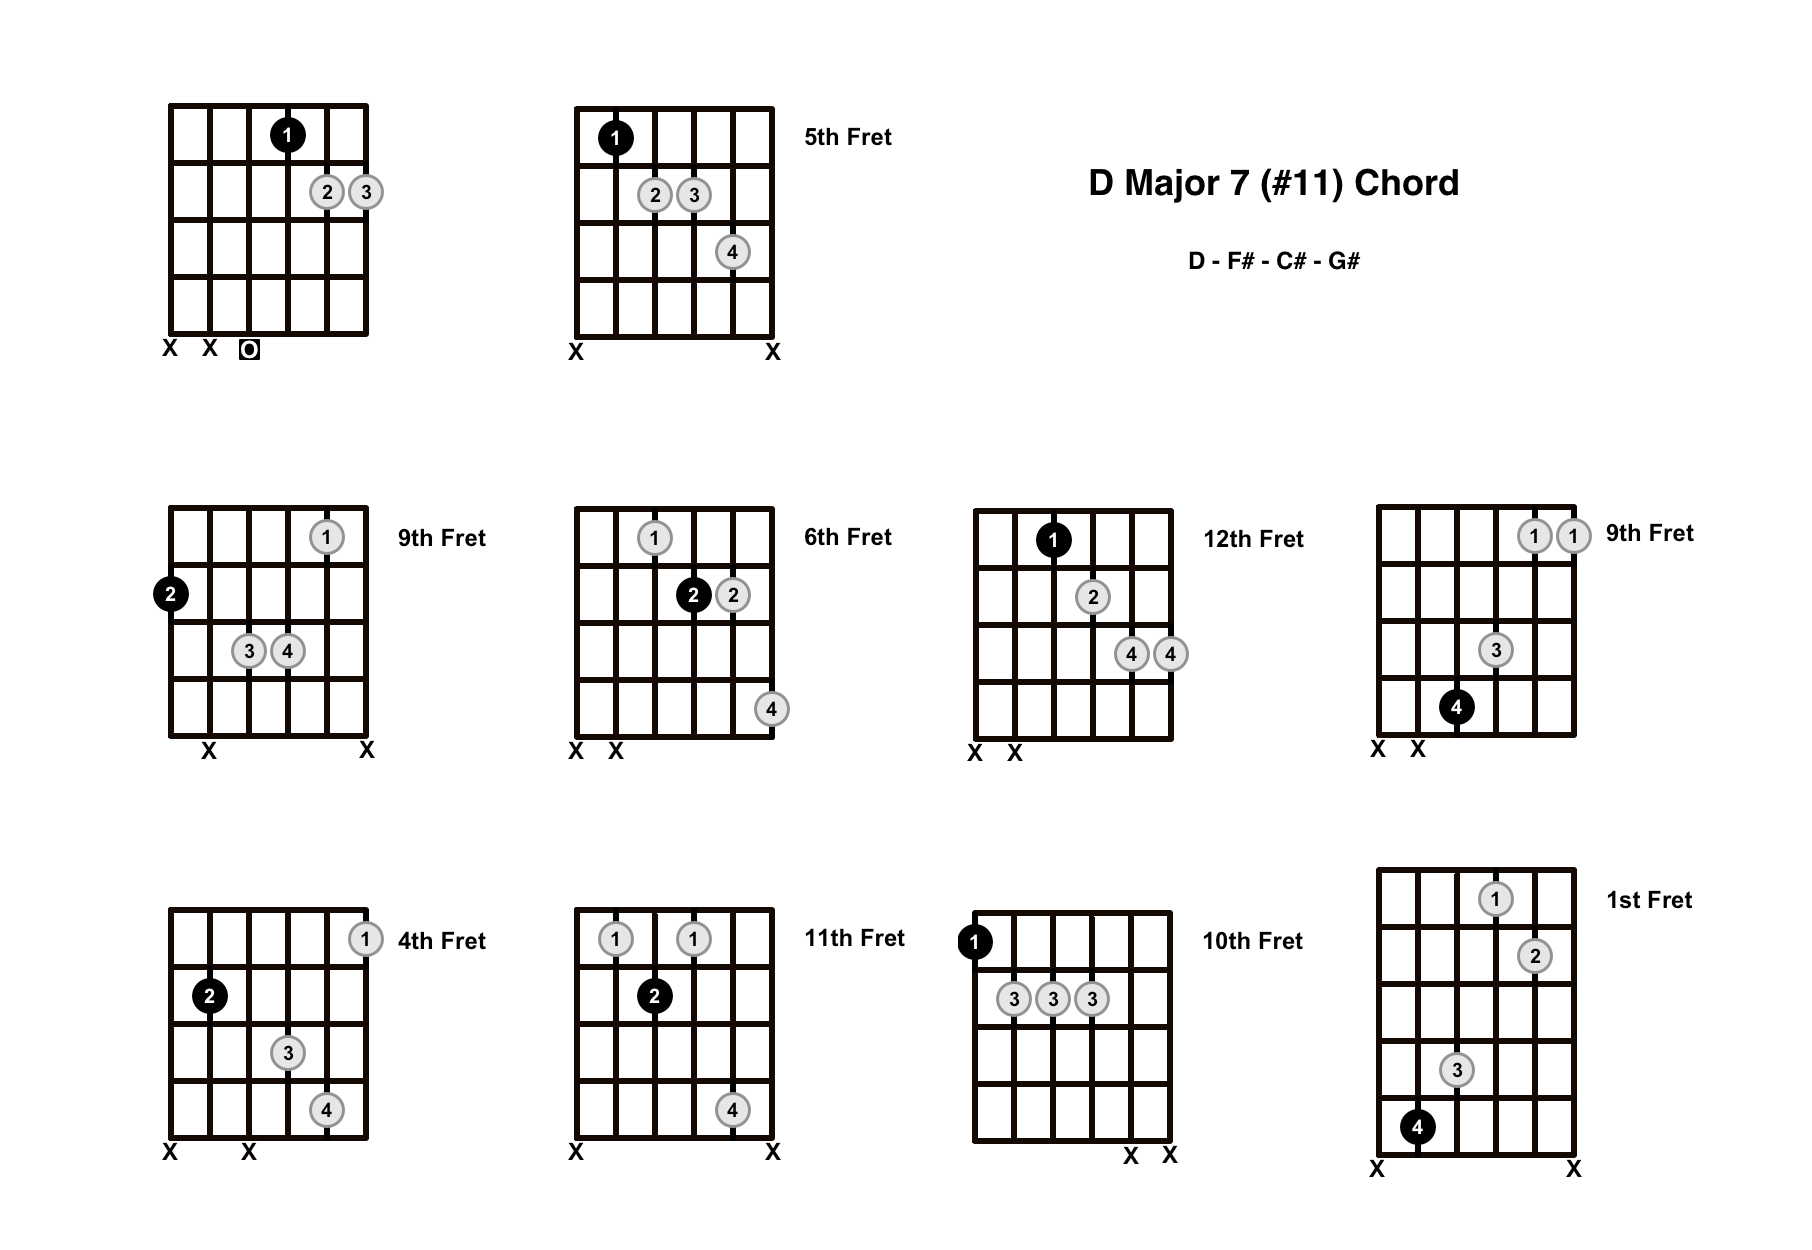 Dmaj7#11 Chord On The Guitar (D Major 7 #11) – Diagrams, Finger Positions and Theory